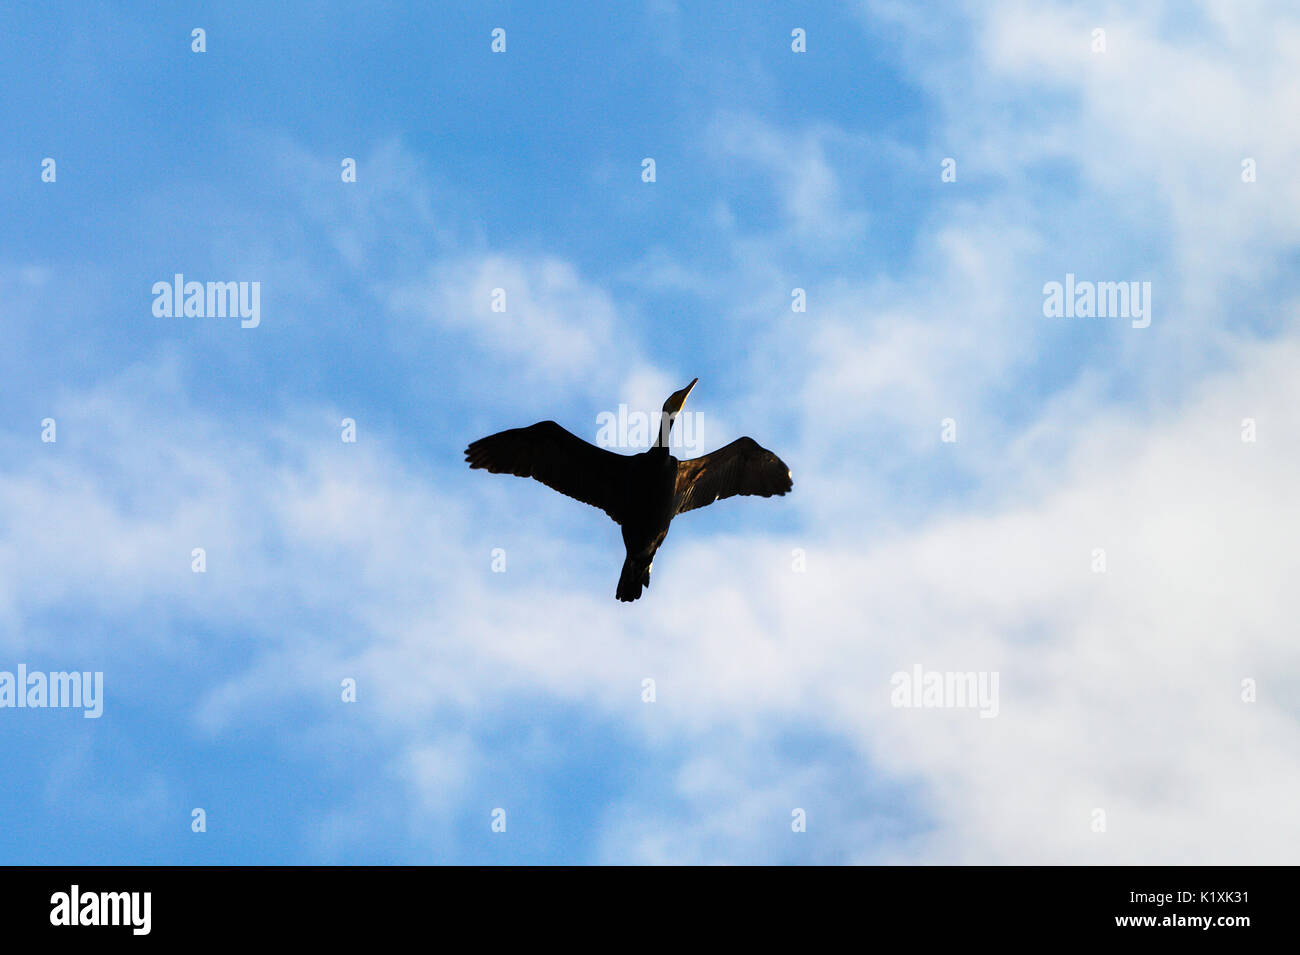 Solitary cormorant Phalacrocorax carbo bird flying up with wings spread against the blue sky and white clouds. Pomerania, northern Poland. - Stock Image